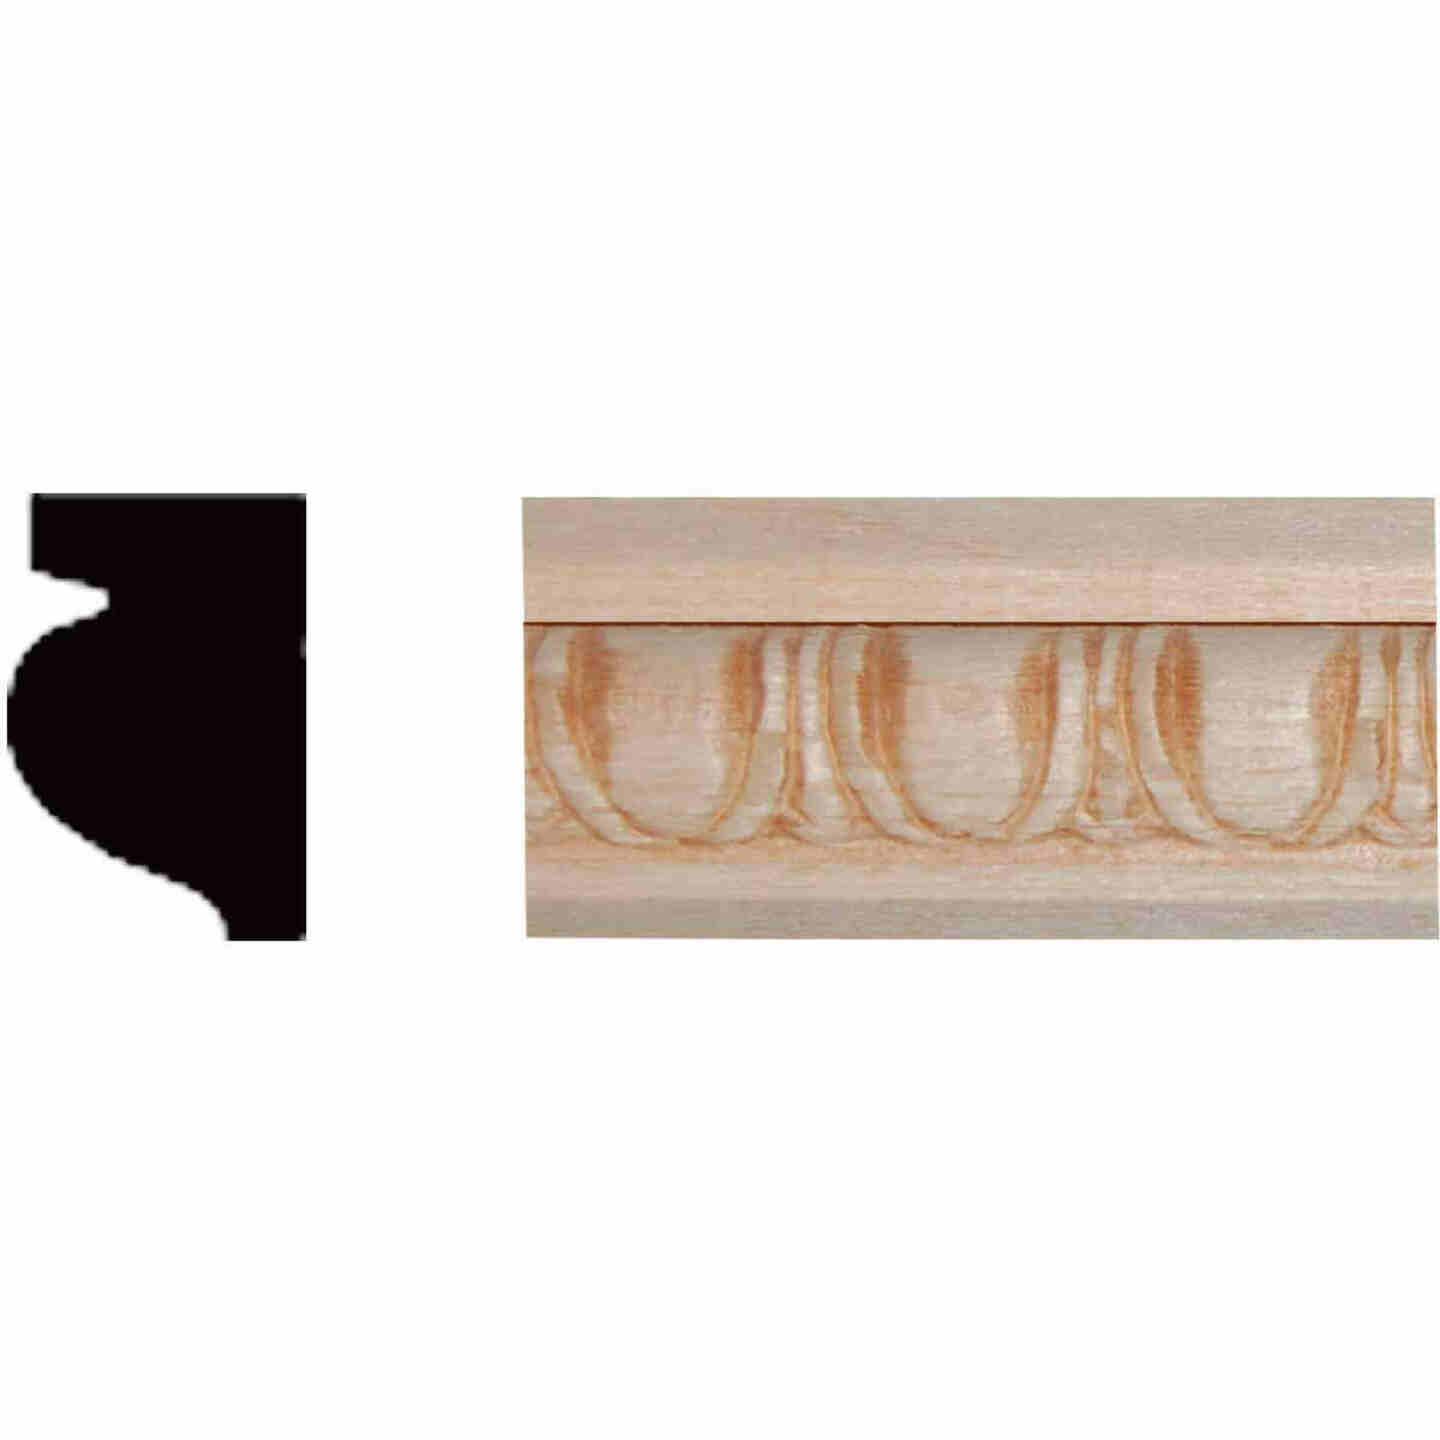 House of Fara 15/32 In. x 21/32 In. x 8 Ft. Hardwood Embossed Decorative Egg & Dart Detail Molding Image 1